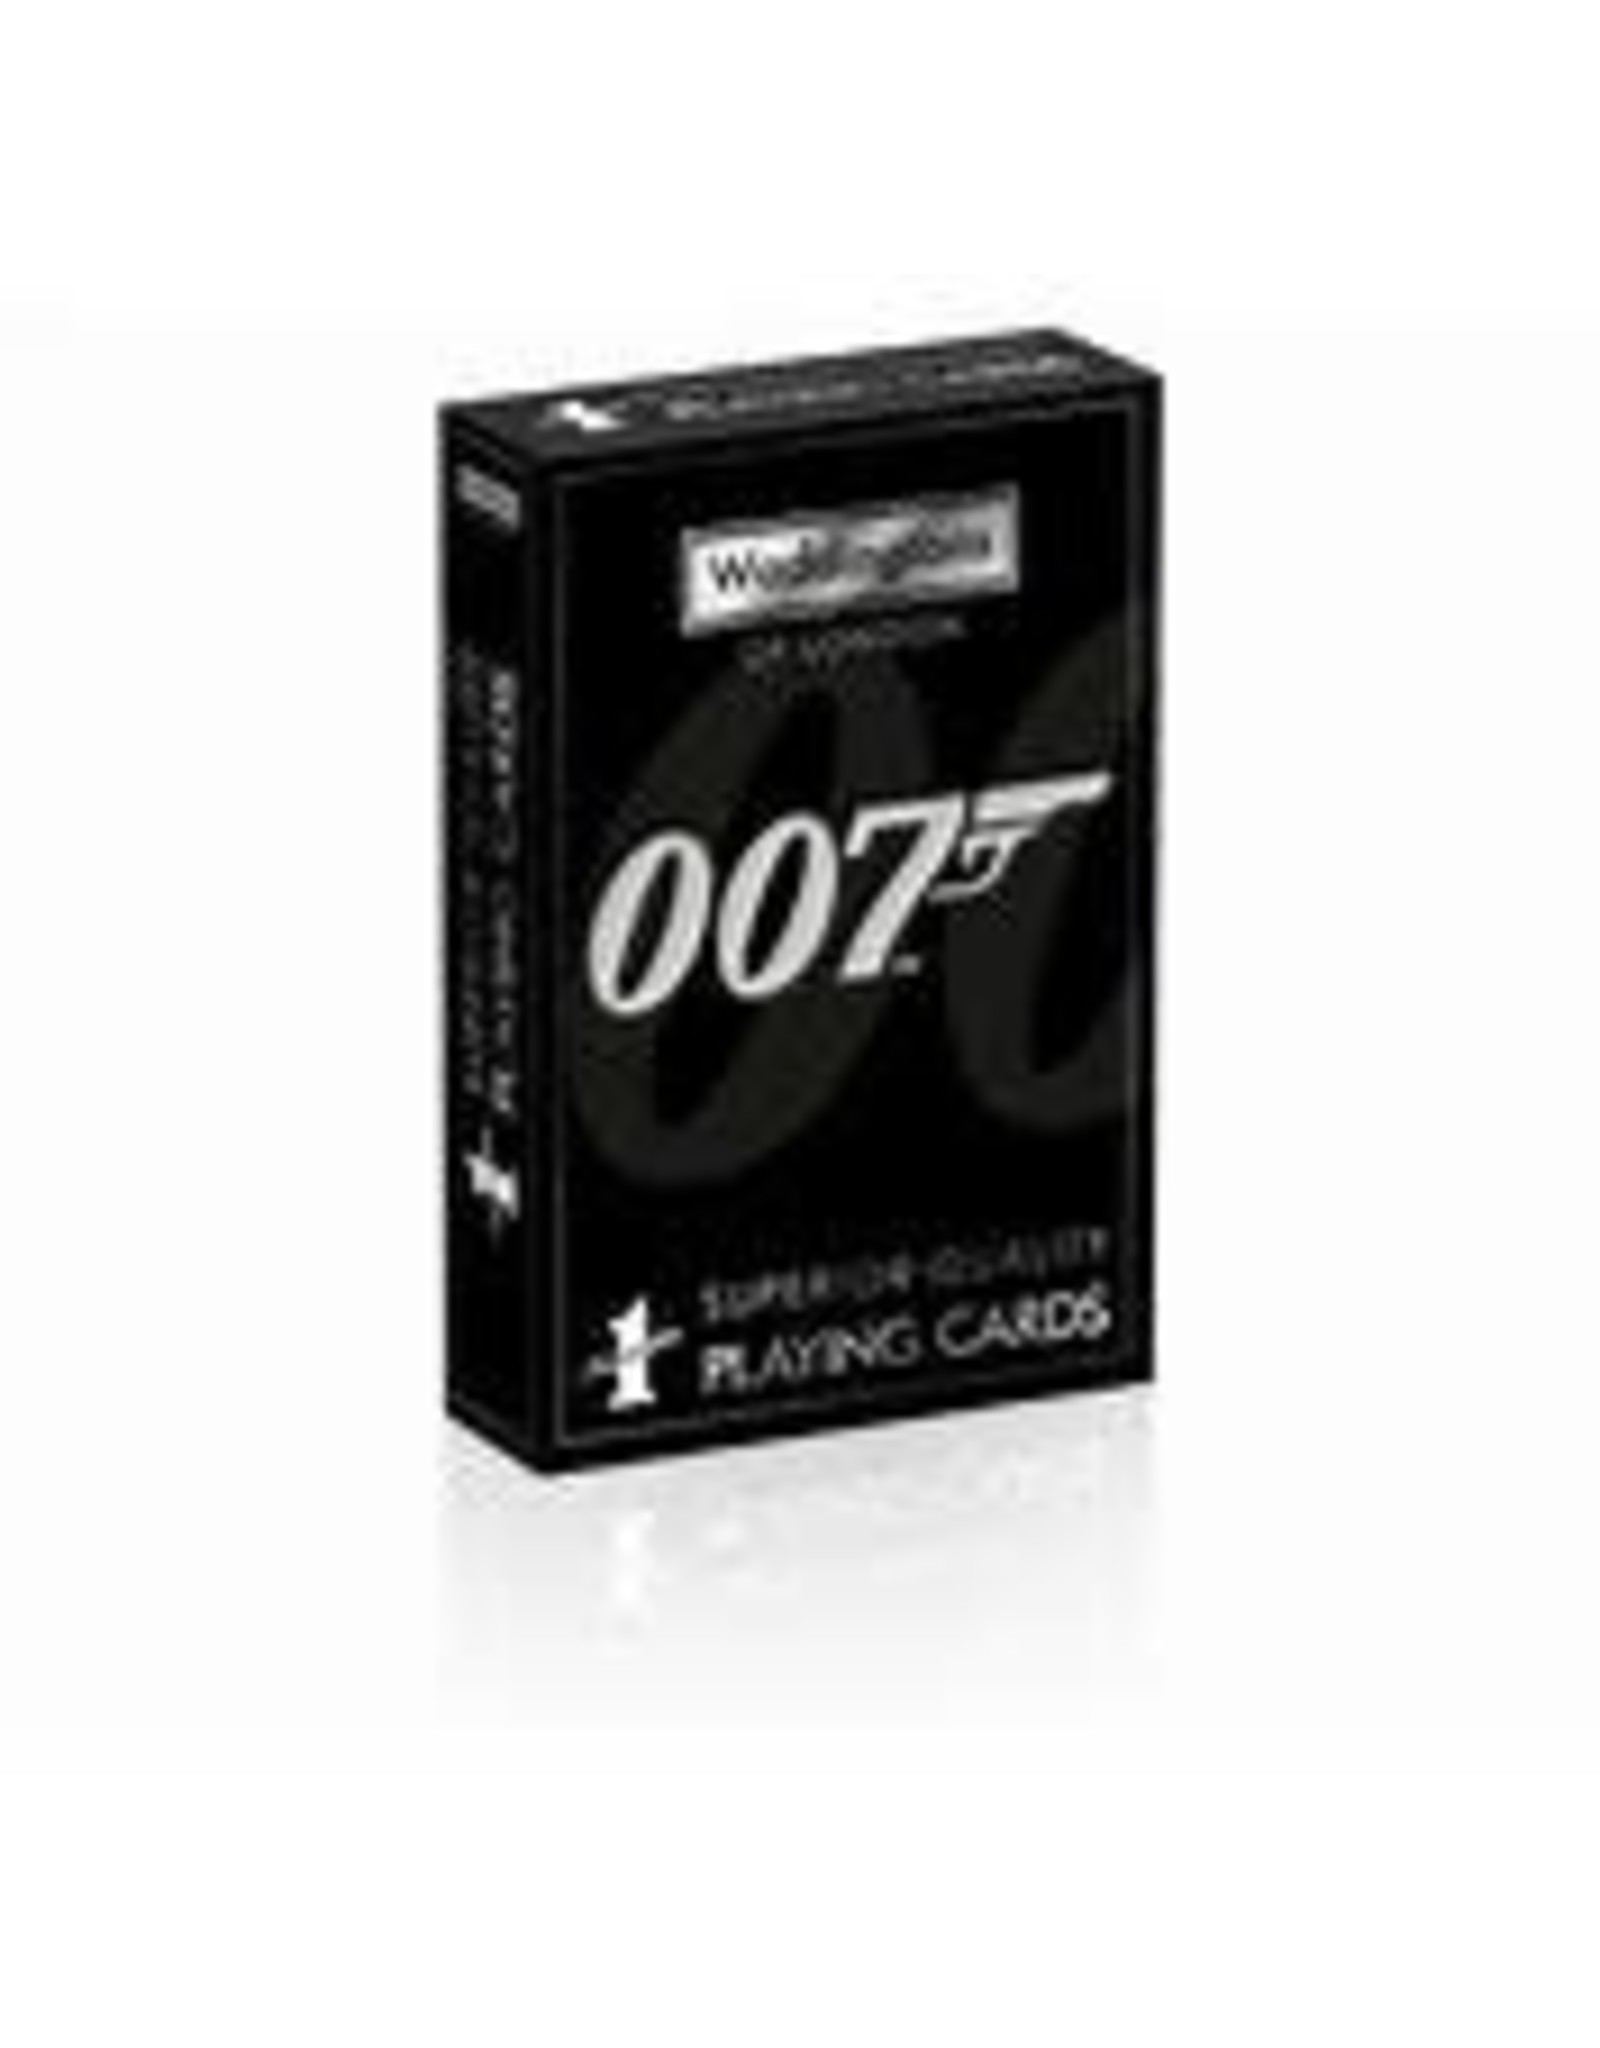 Top Trumps 007 Playing Cards